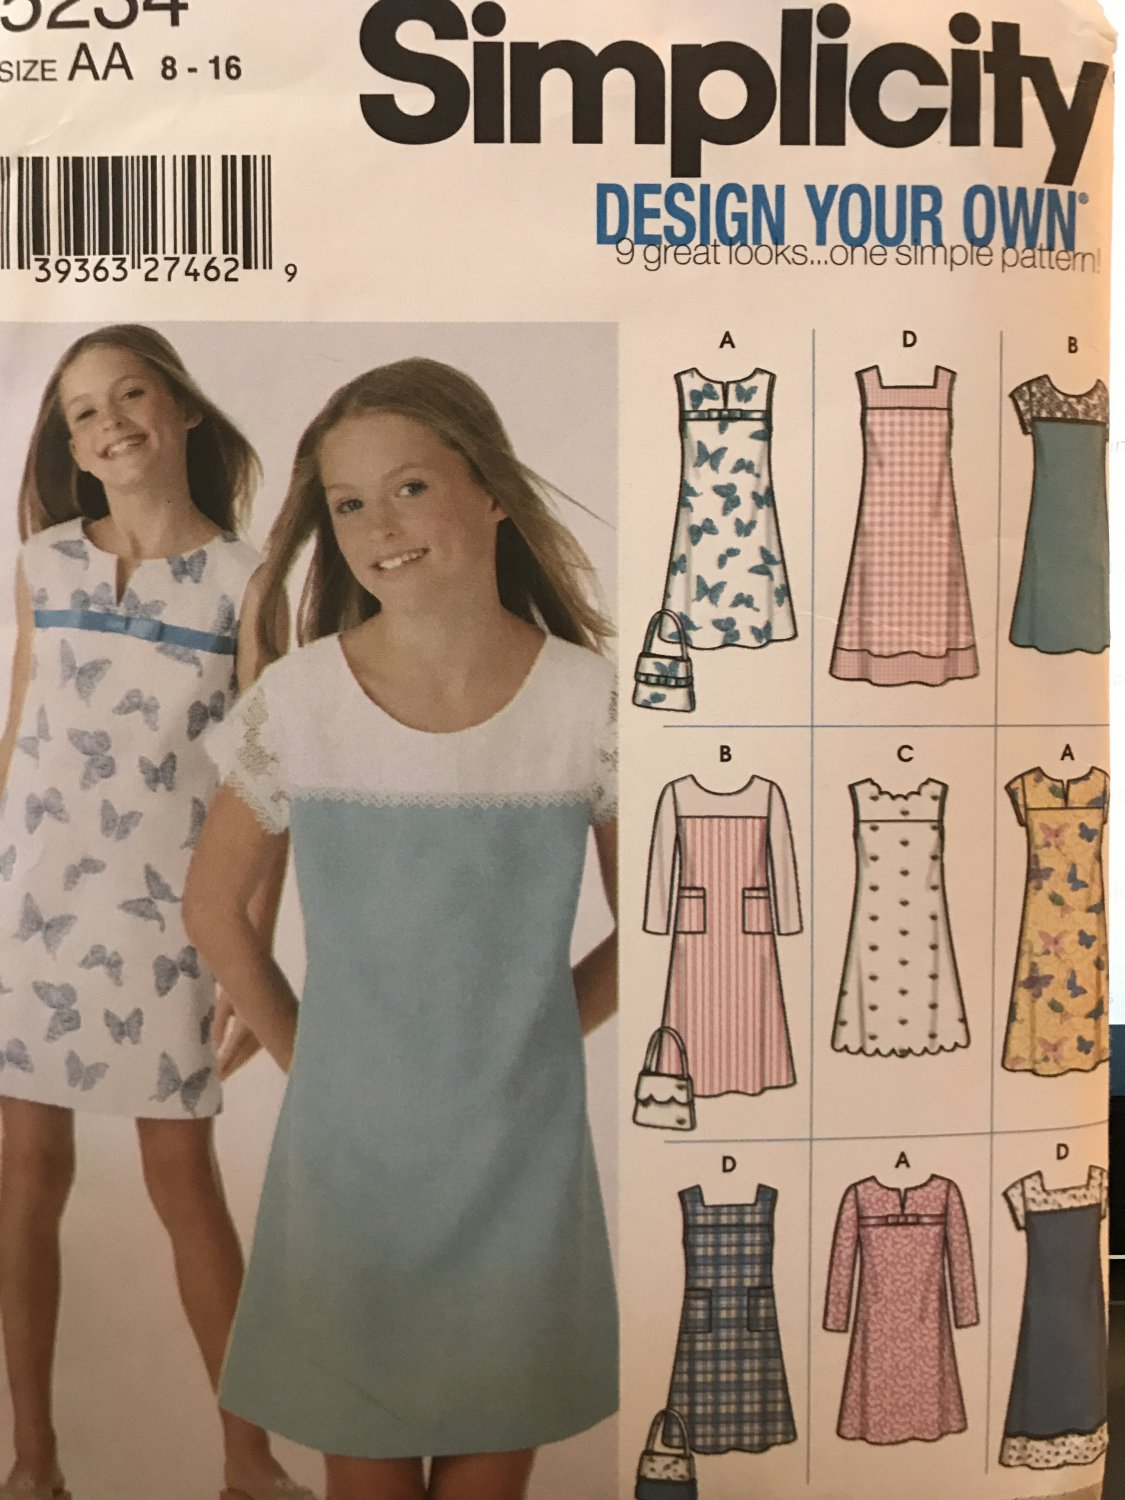 Simplicity 5234 Girls's Design your own dress Sewing Pattern Size 8-16